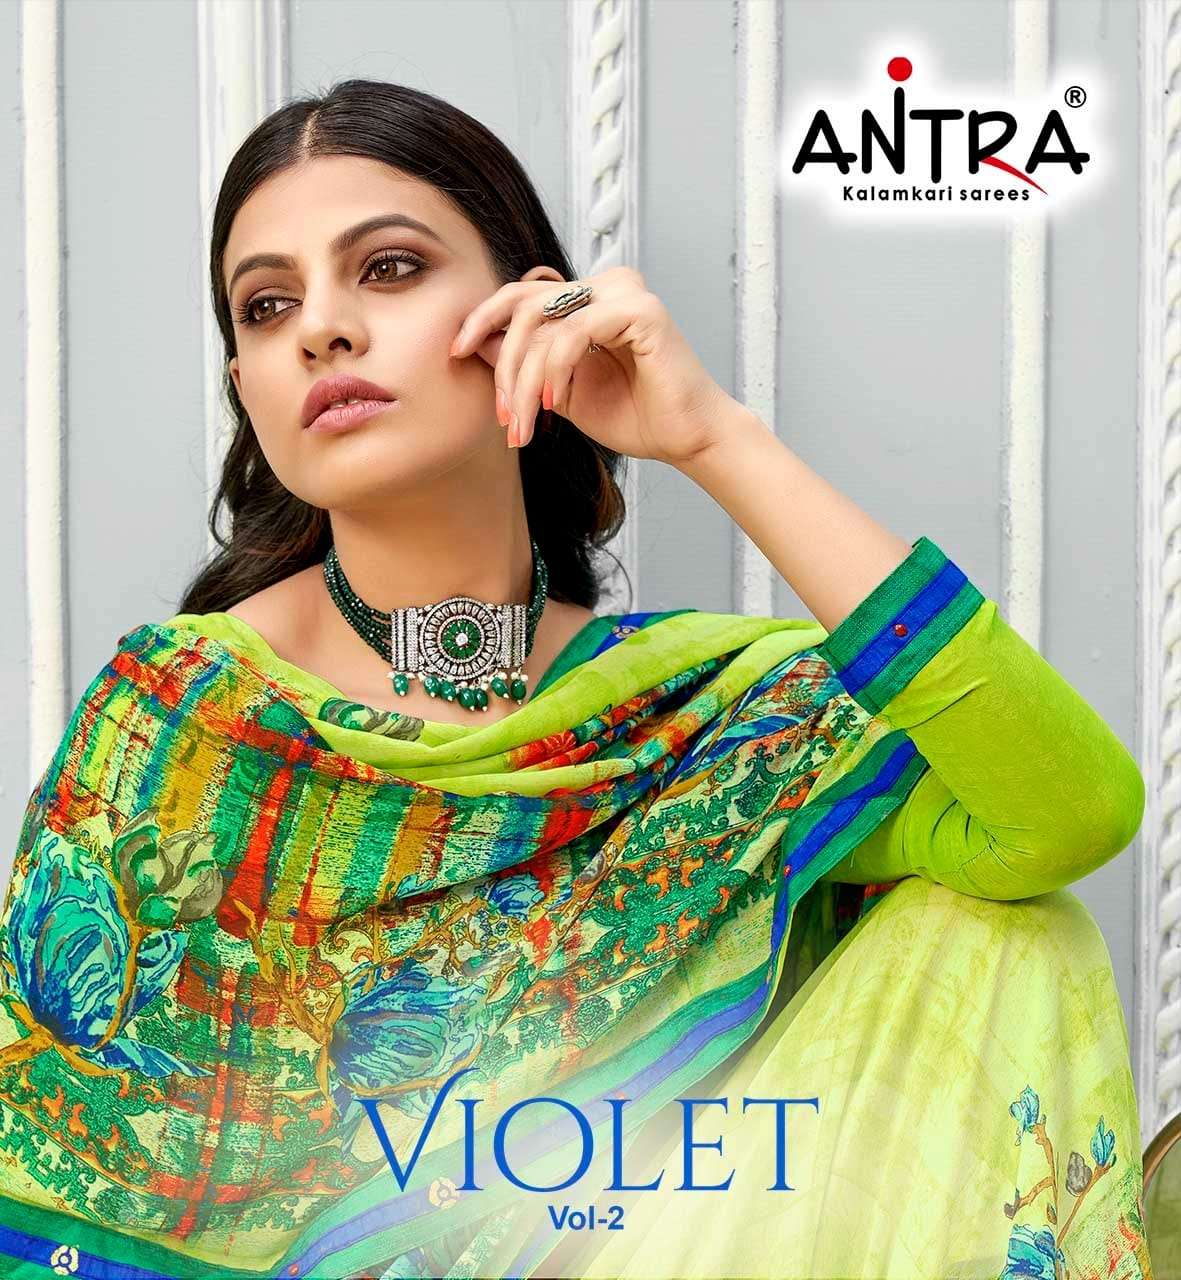 Antra Violet Vol 2 Weightless Printed Casual Wear Saree